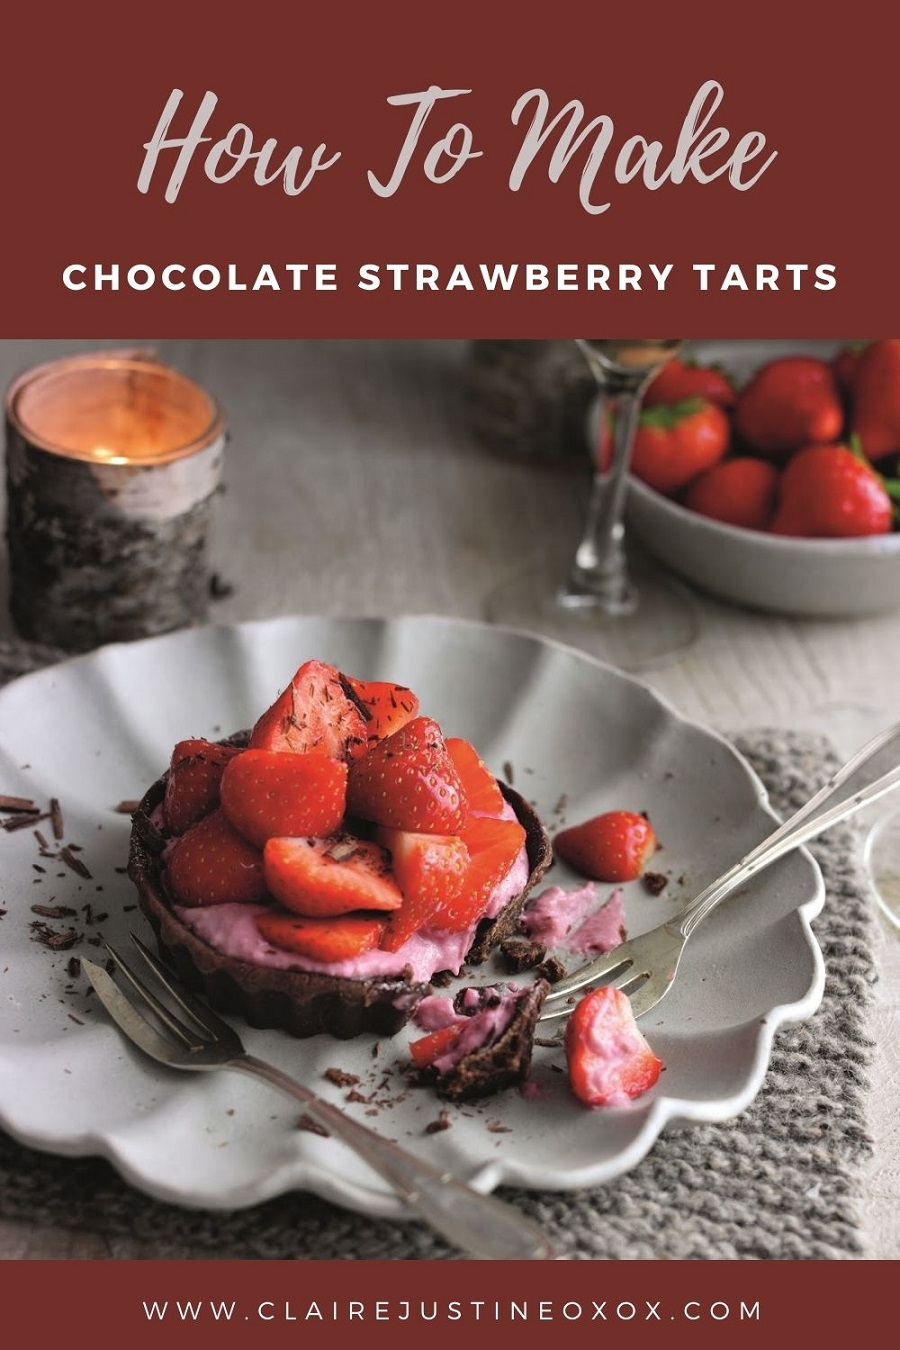 Chocolate Strawberry Tarts And How To Make Some